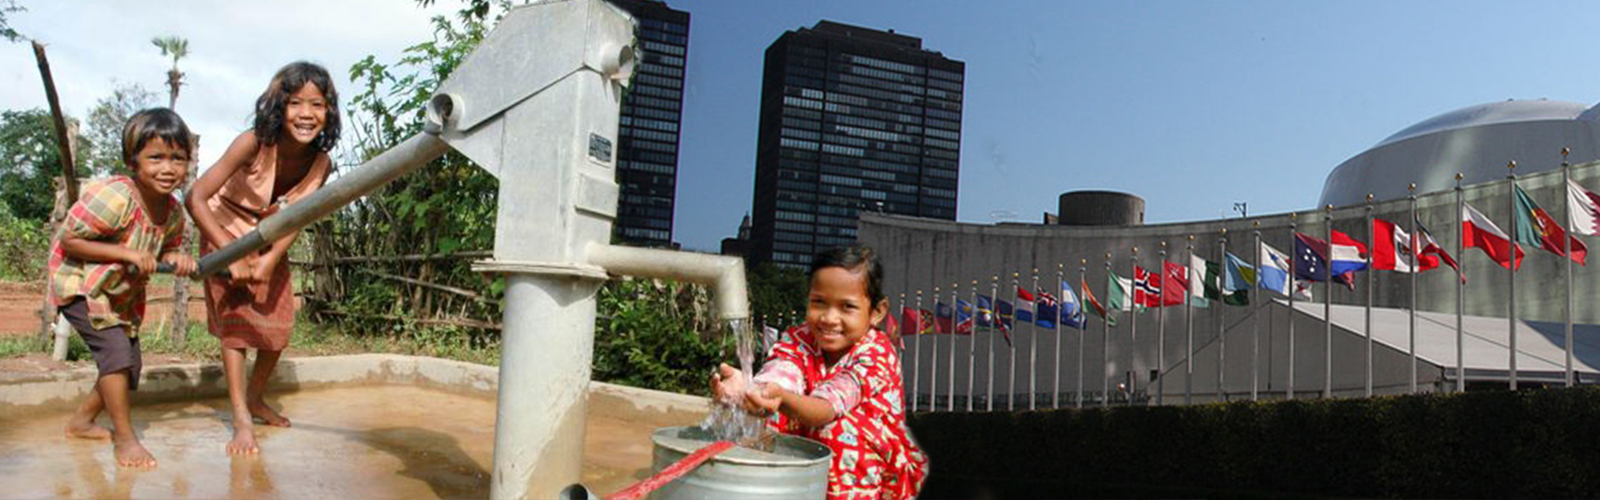 Cambodian children and UN building